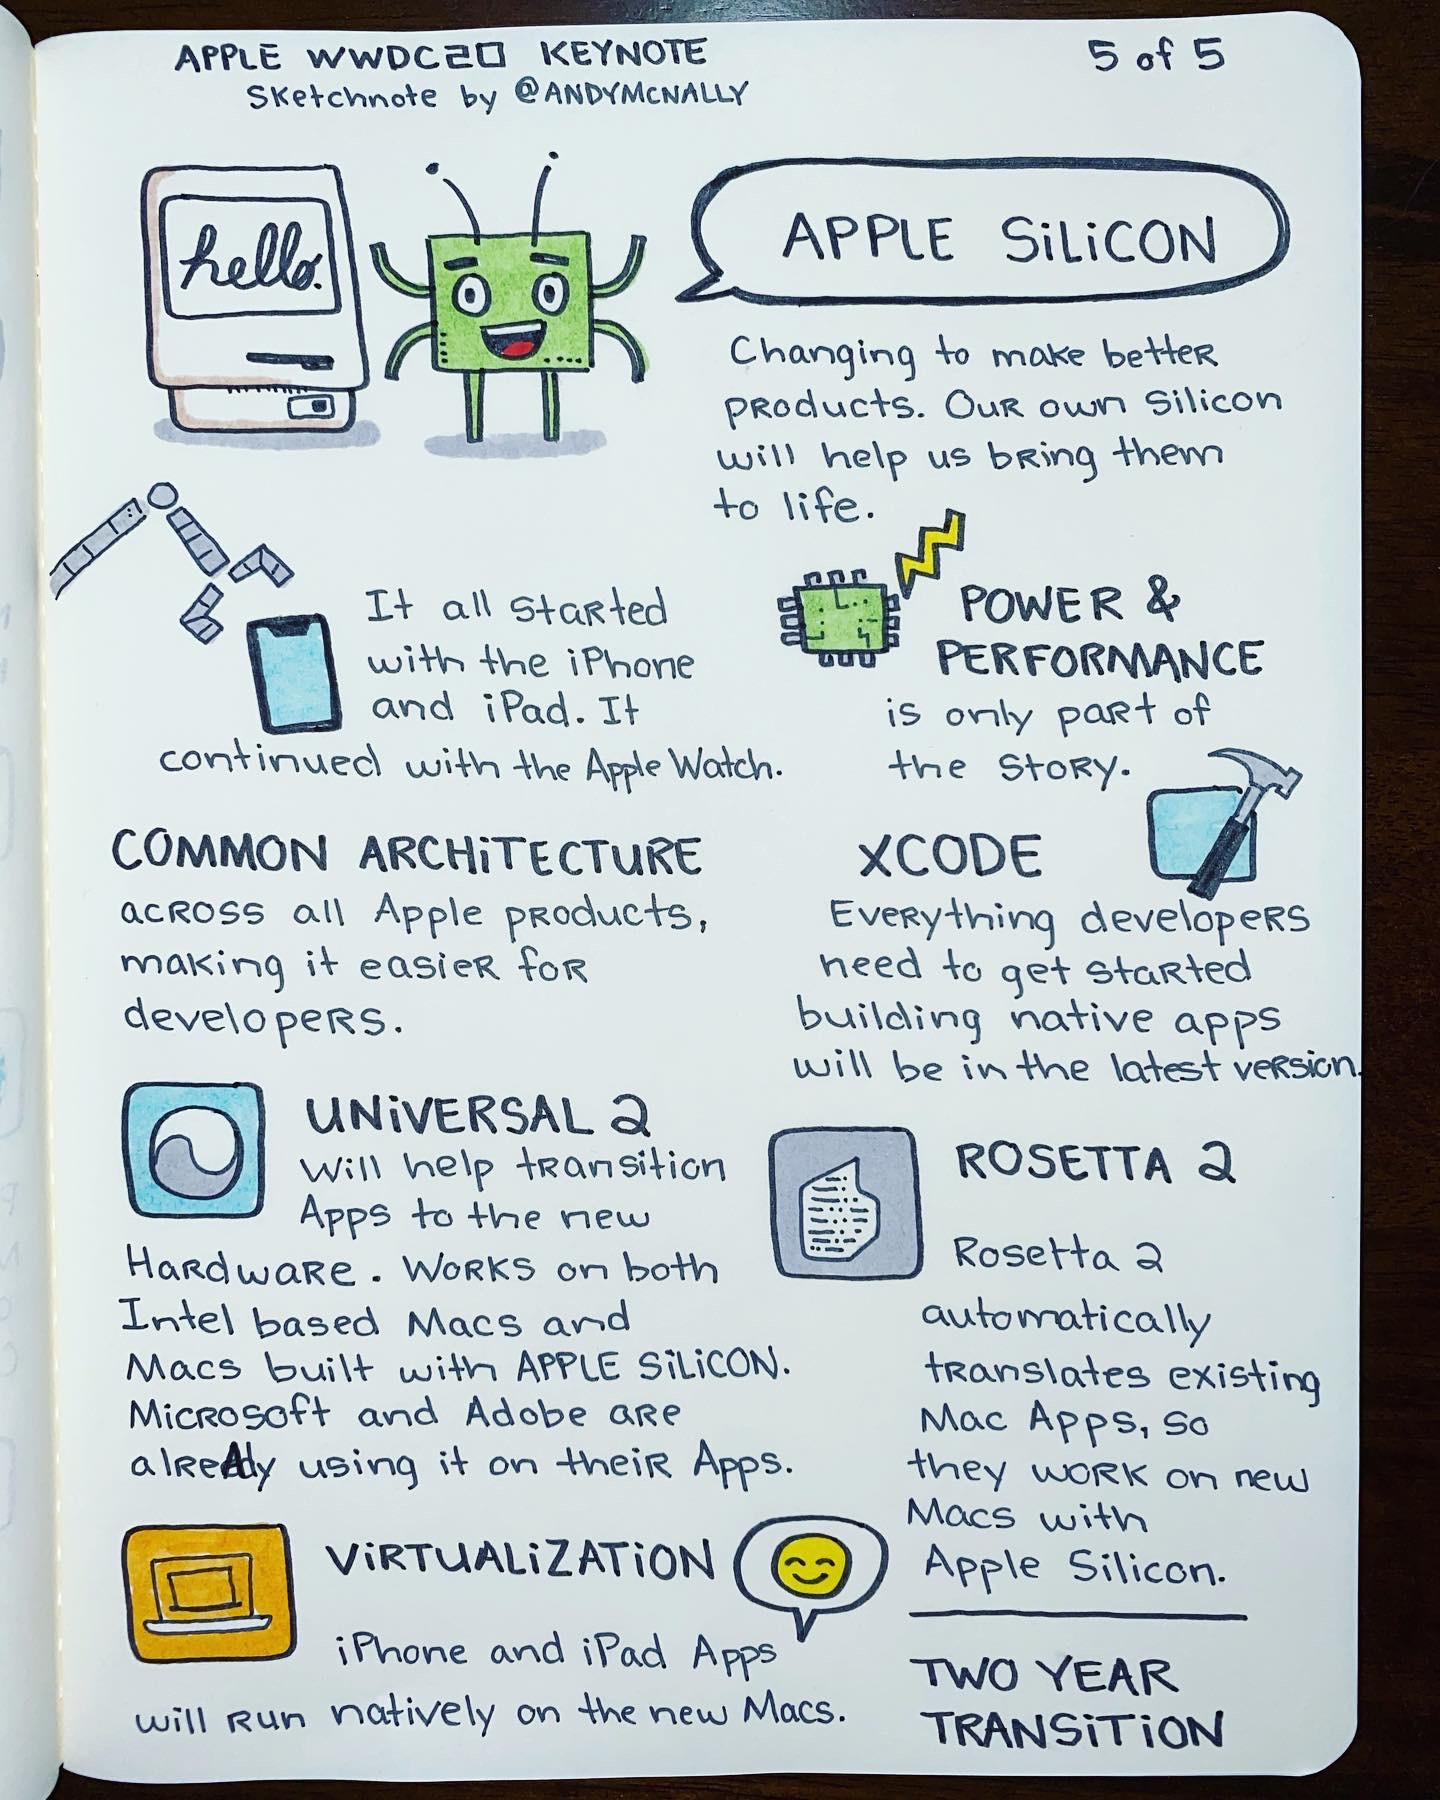 Apple WWDC 2020 Keynote drawing 5 of 5